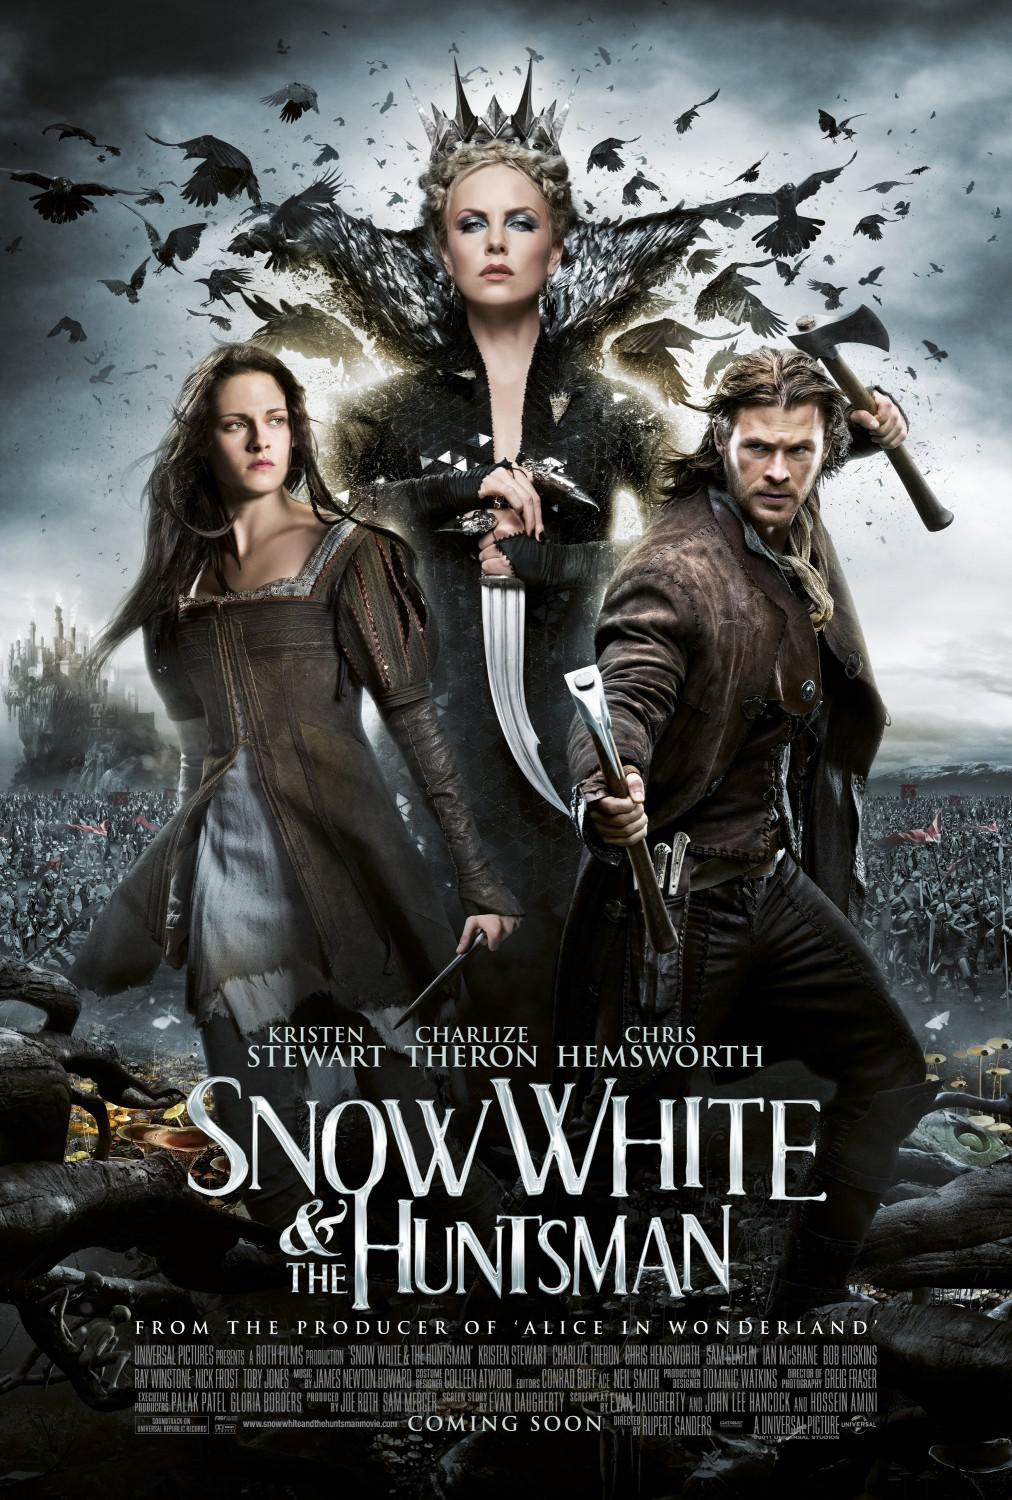 Snow White and the Huntsman - Snowhite - Biancaneve e il Cacciatore - poster